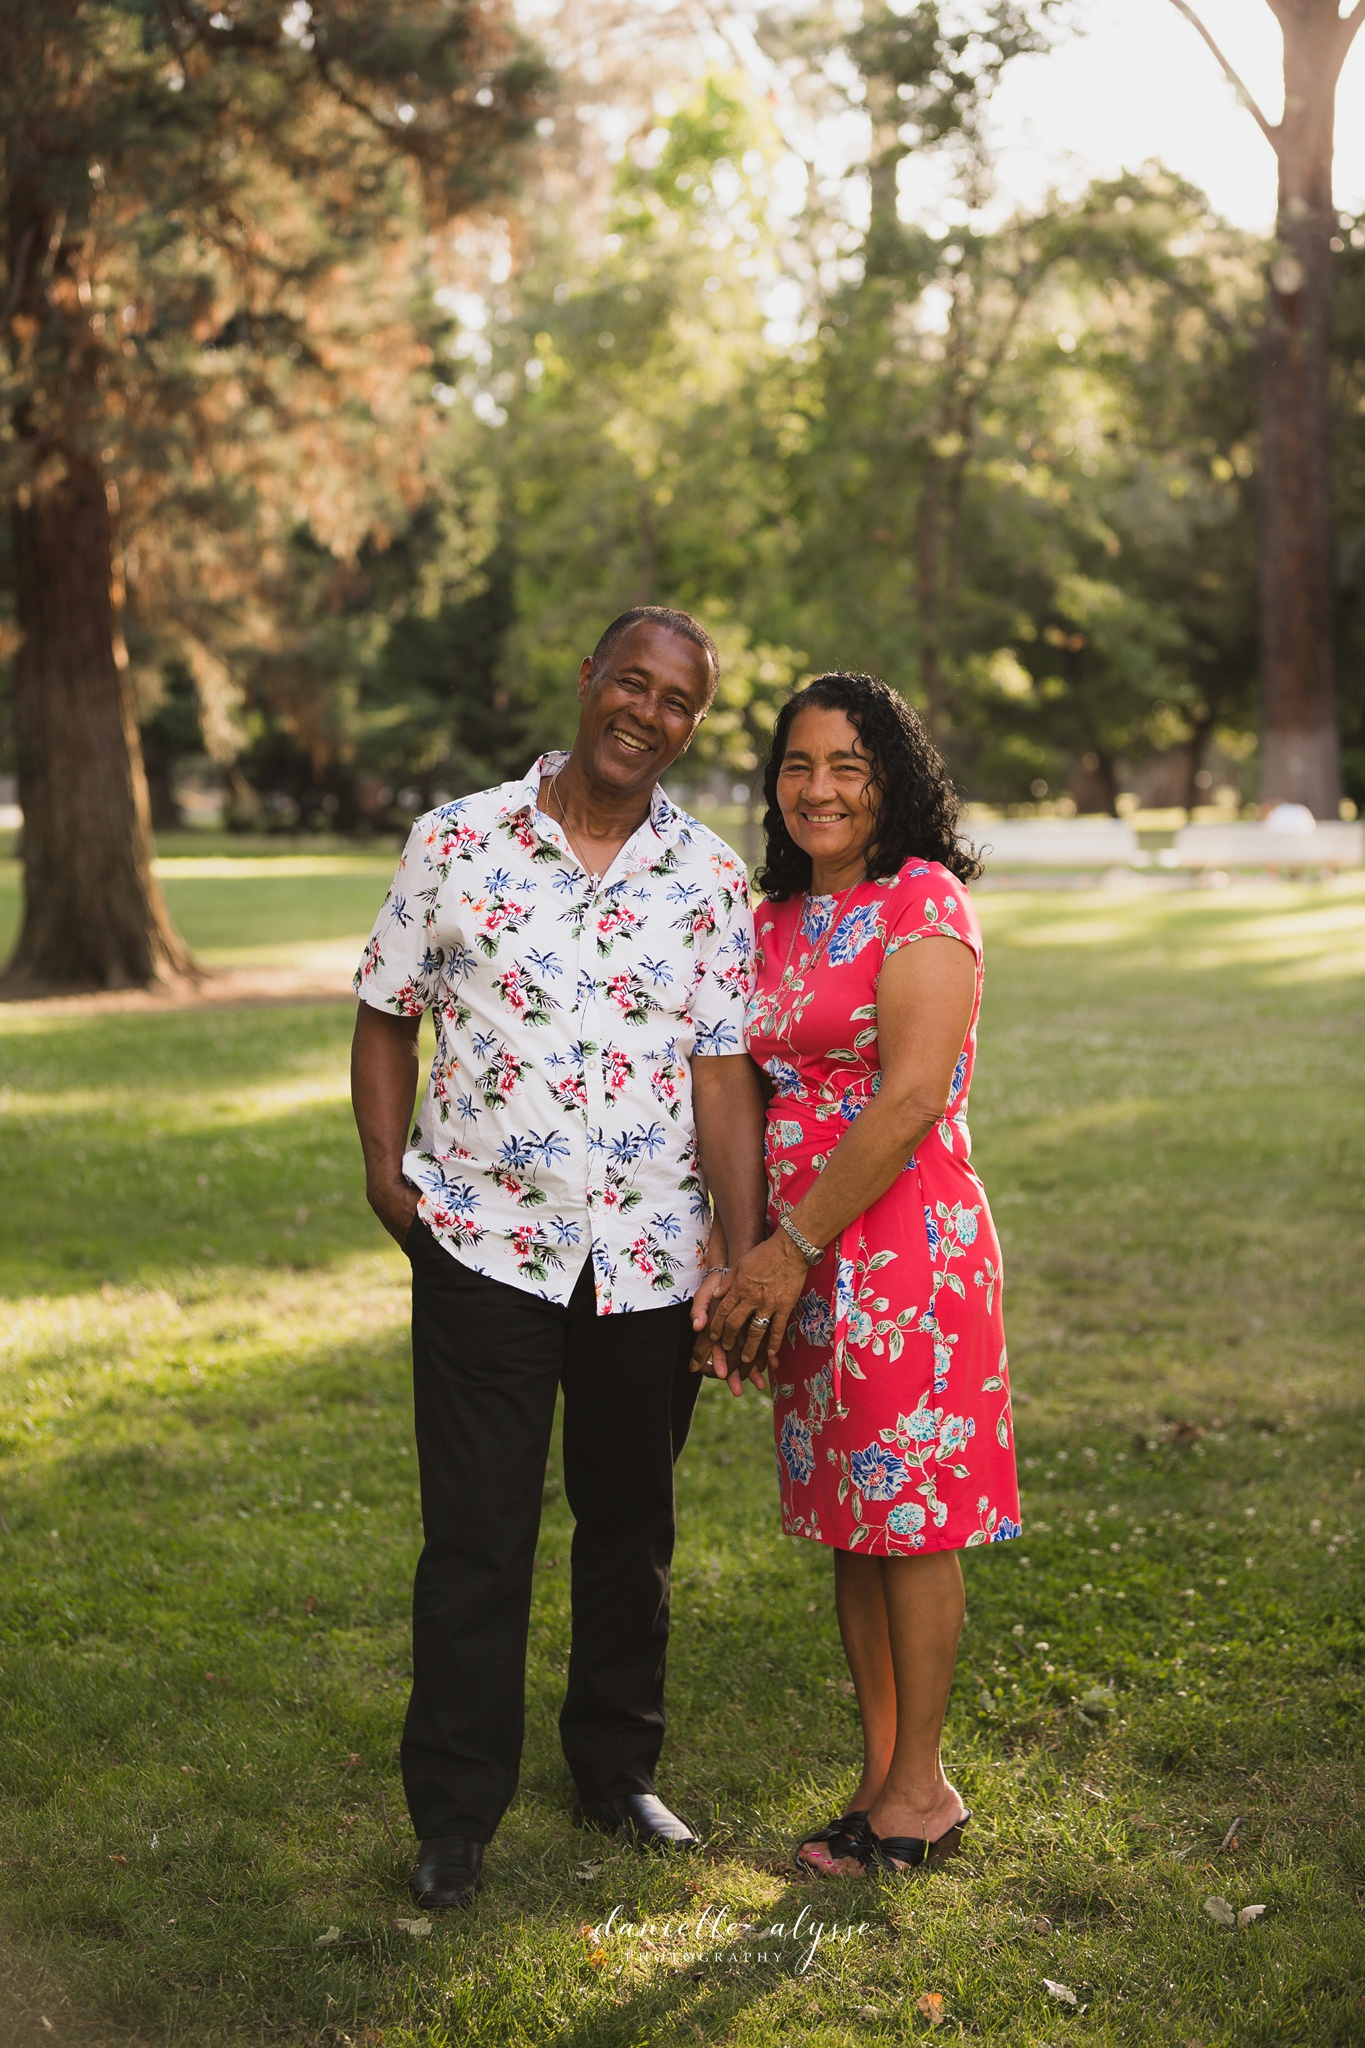 180604_family_senior_portrait_eresvey_sacramento_state_capitol_california_danielle_alysse_photography_blog_2_11_WEB.jpg